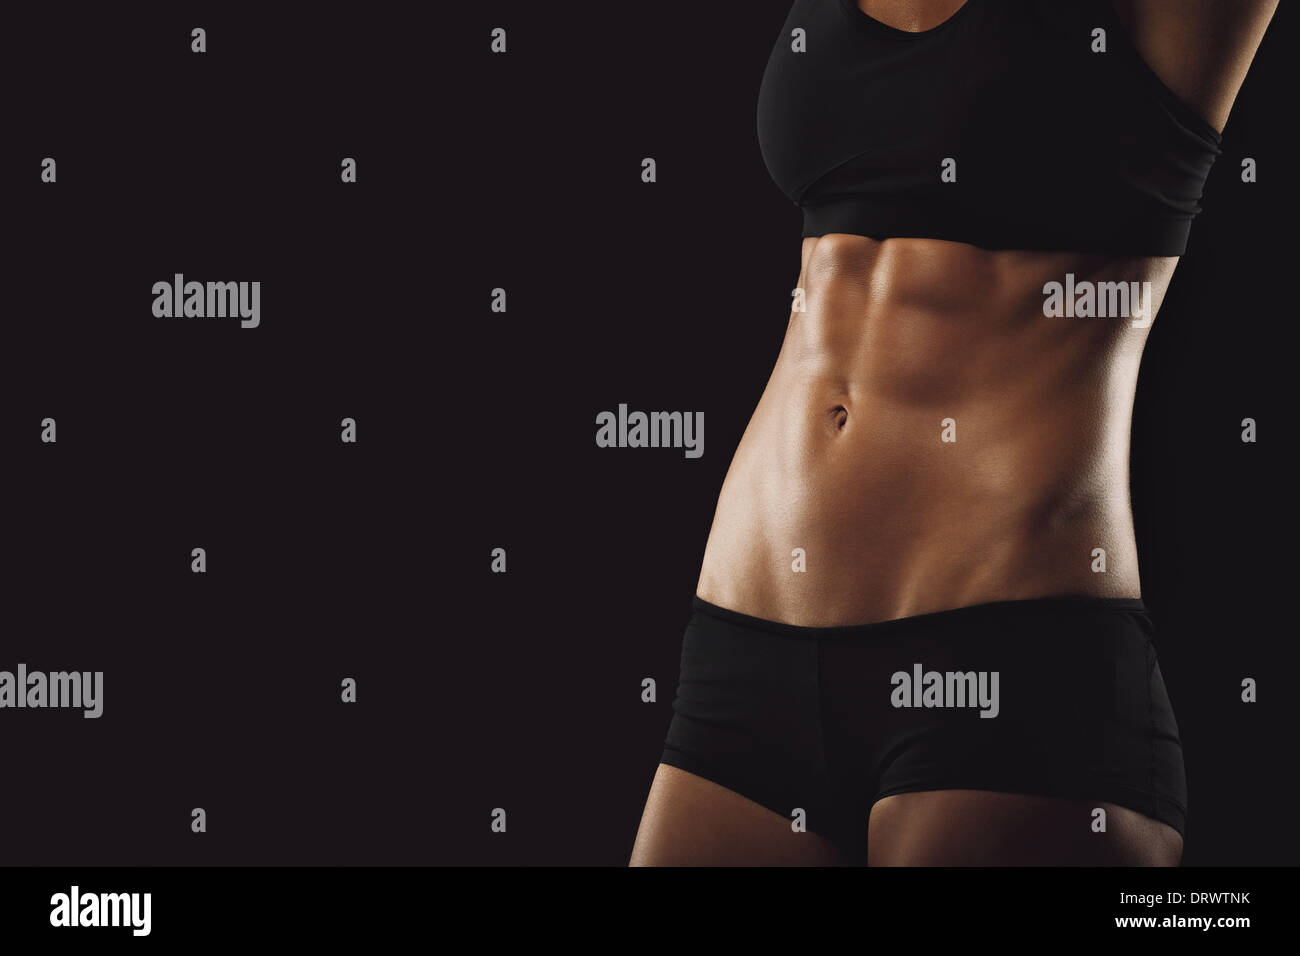 Slim and fit woman belly. Torso of fitness female. Mid section of woman body with muscular abs on black background - Stock Image